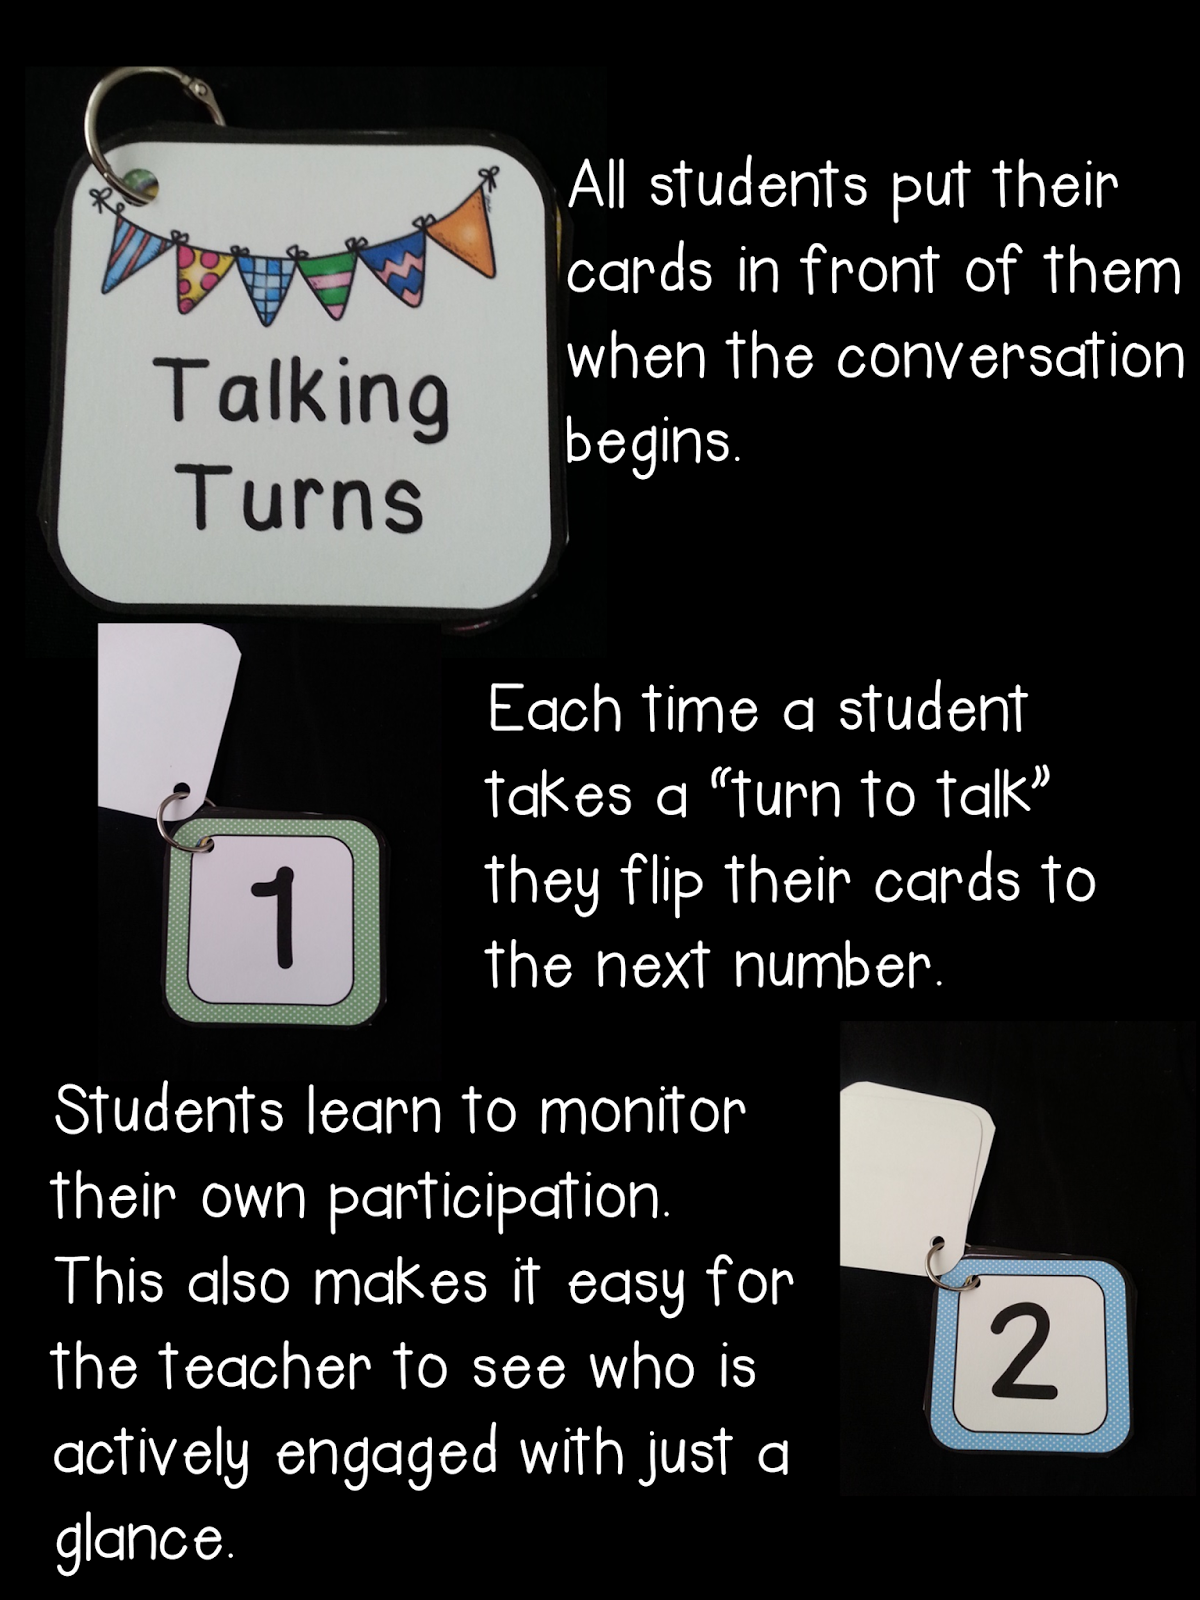 https://www.teacherspayteachers.com/Product/Talking-Turn-Cards-Tools-for-Speaking-and-Listening-and-Conversation-Circles-1447827